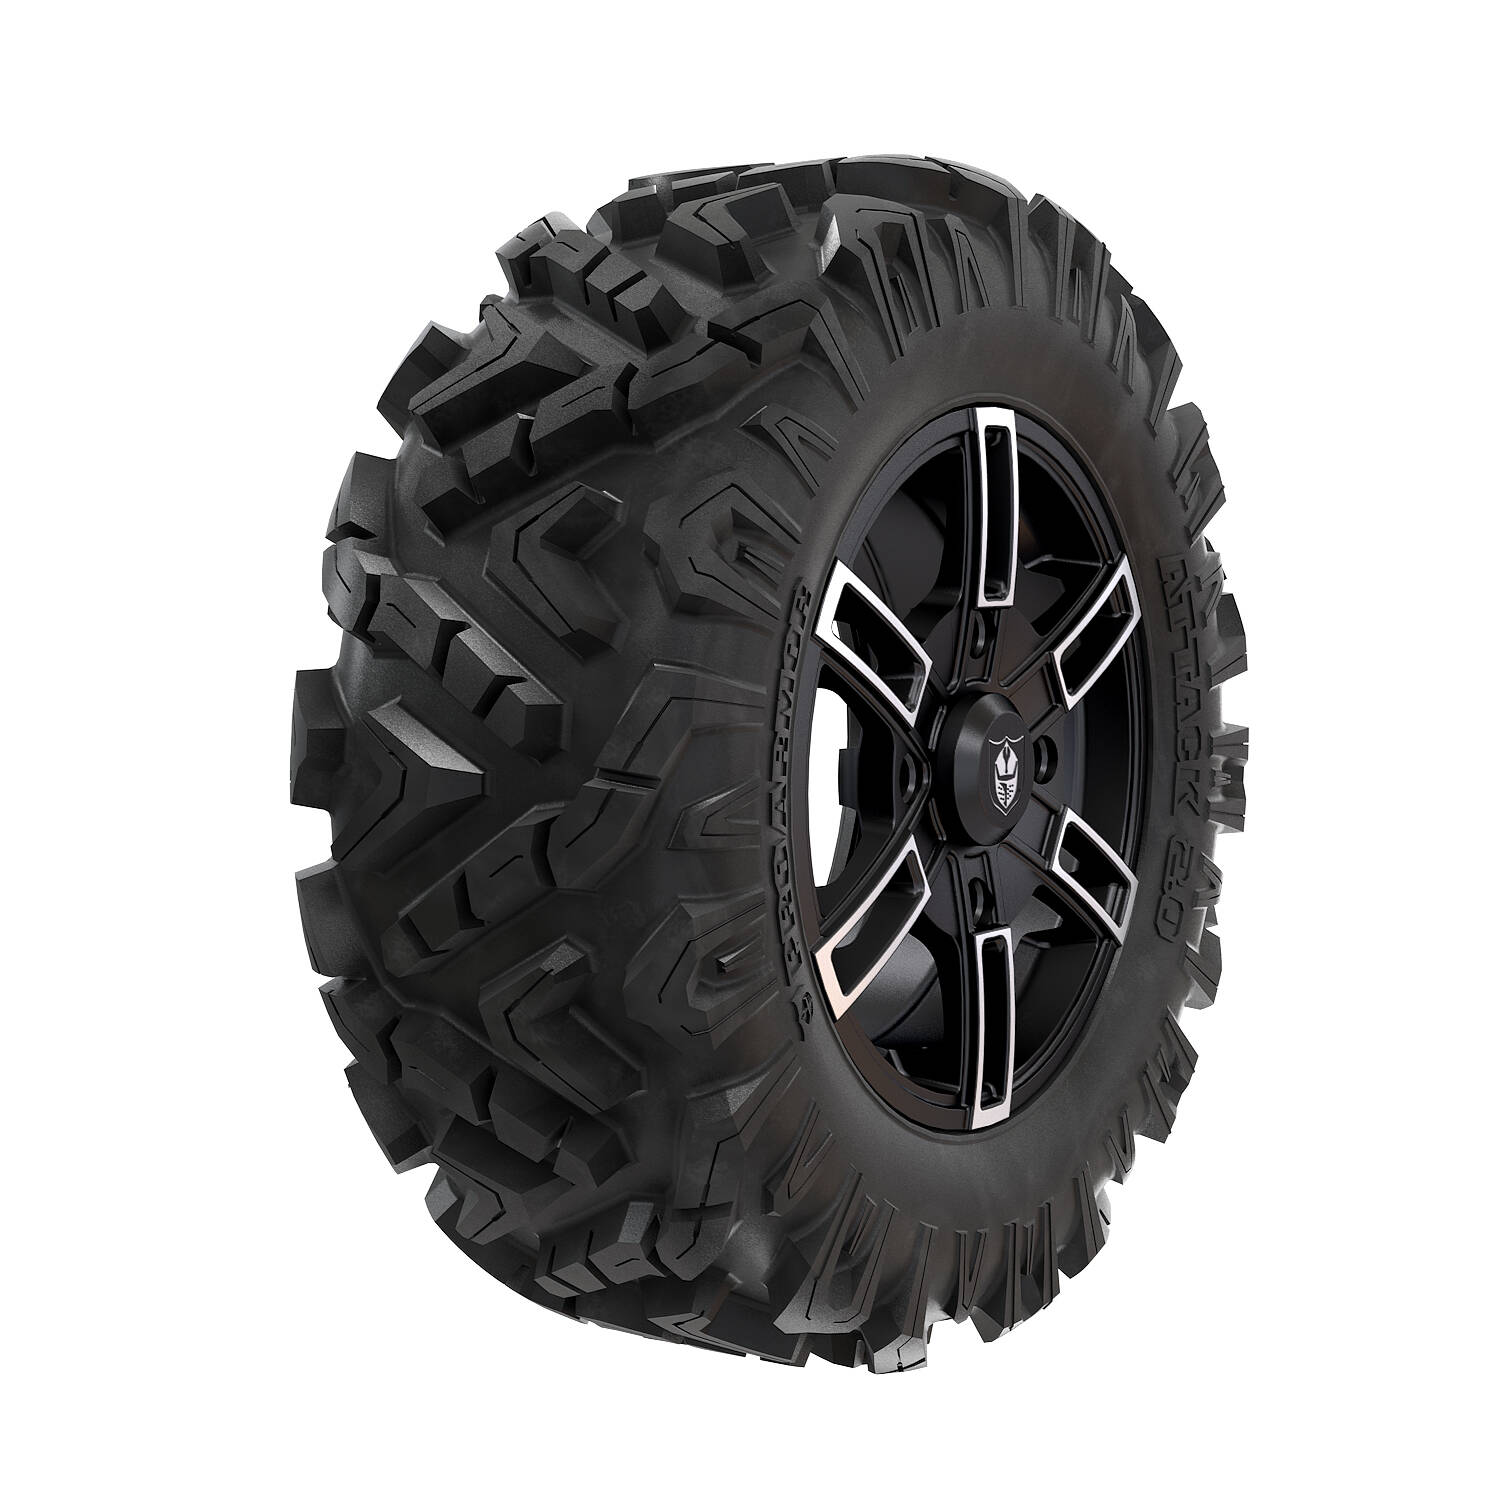 Pro Armor® Wheel & Tire Set: Wyde & Attack 2.0, Accent, 28R15